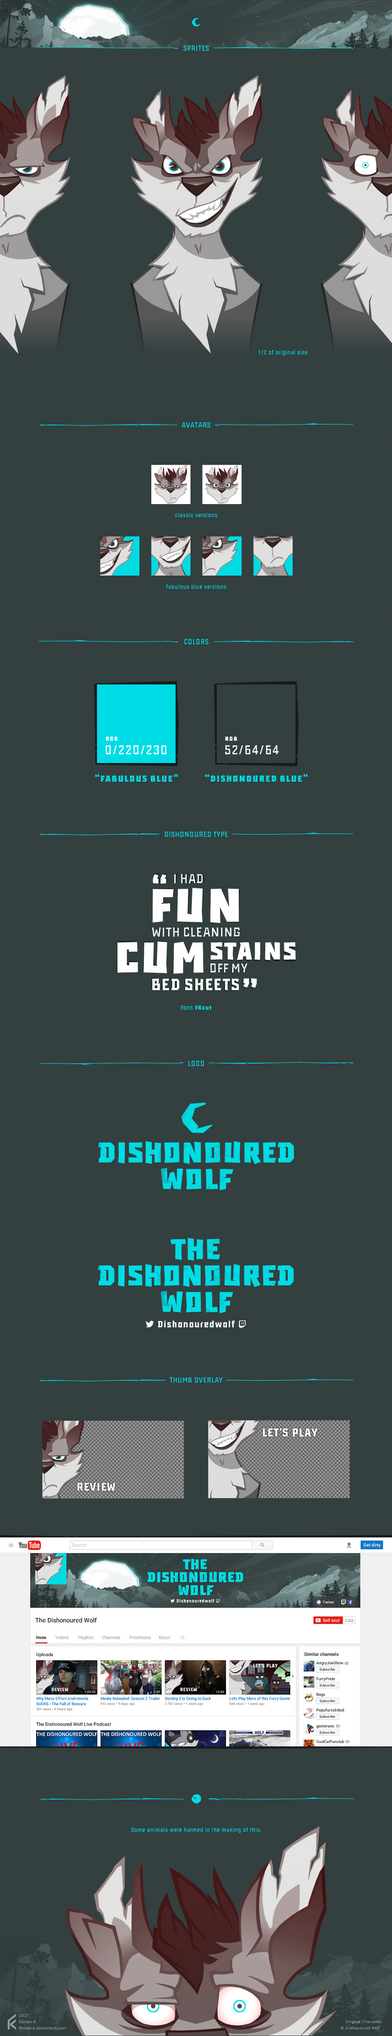 The Dishonoured Wolf: Channel Branding by Florian-K